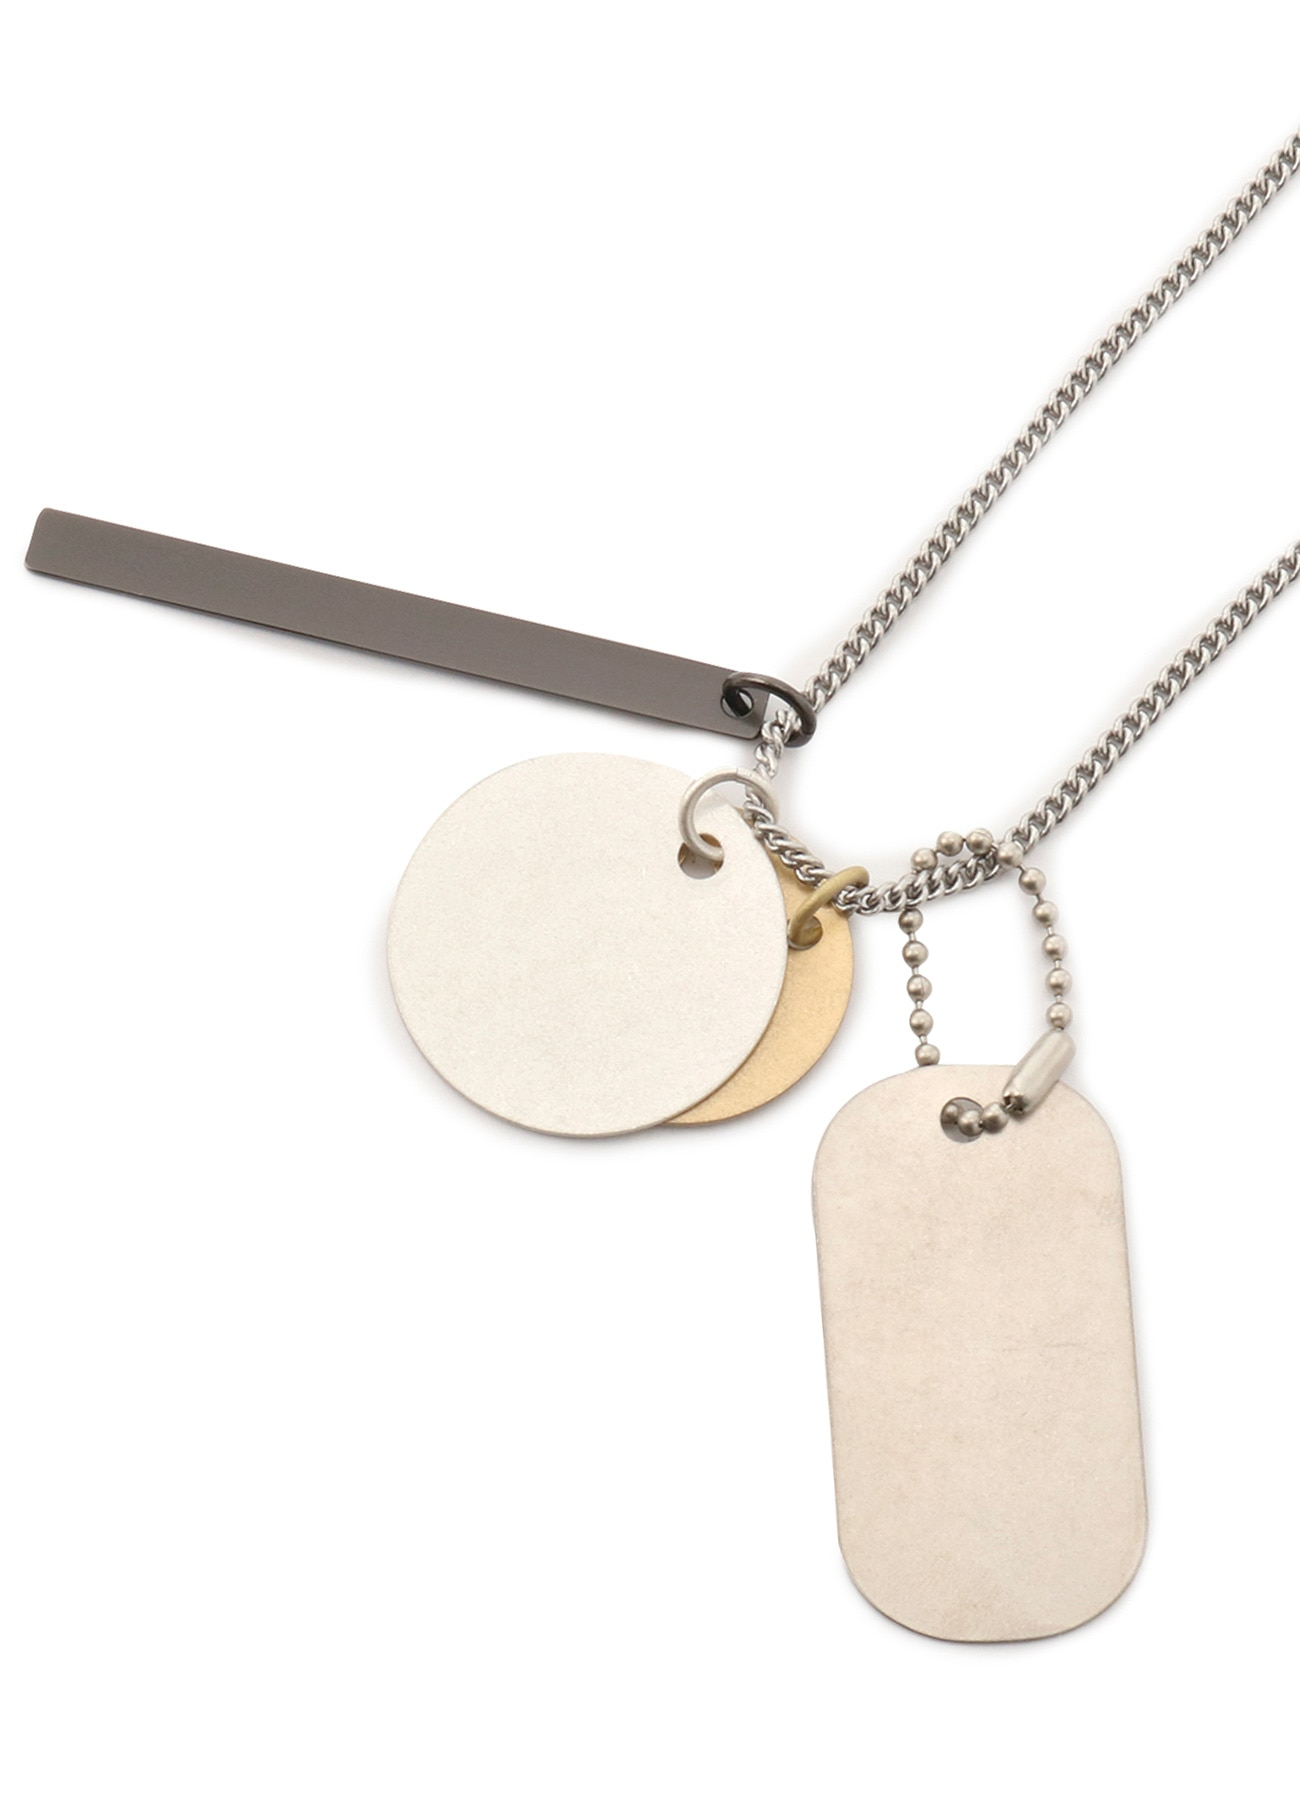 Brass Dog Tag Necklace